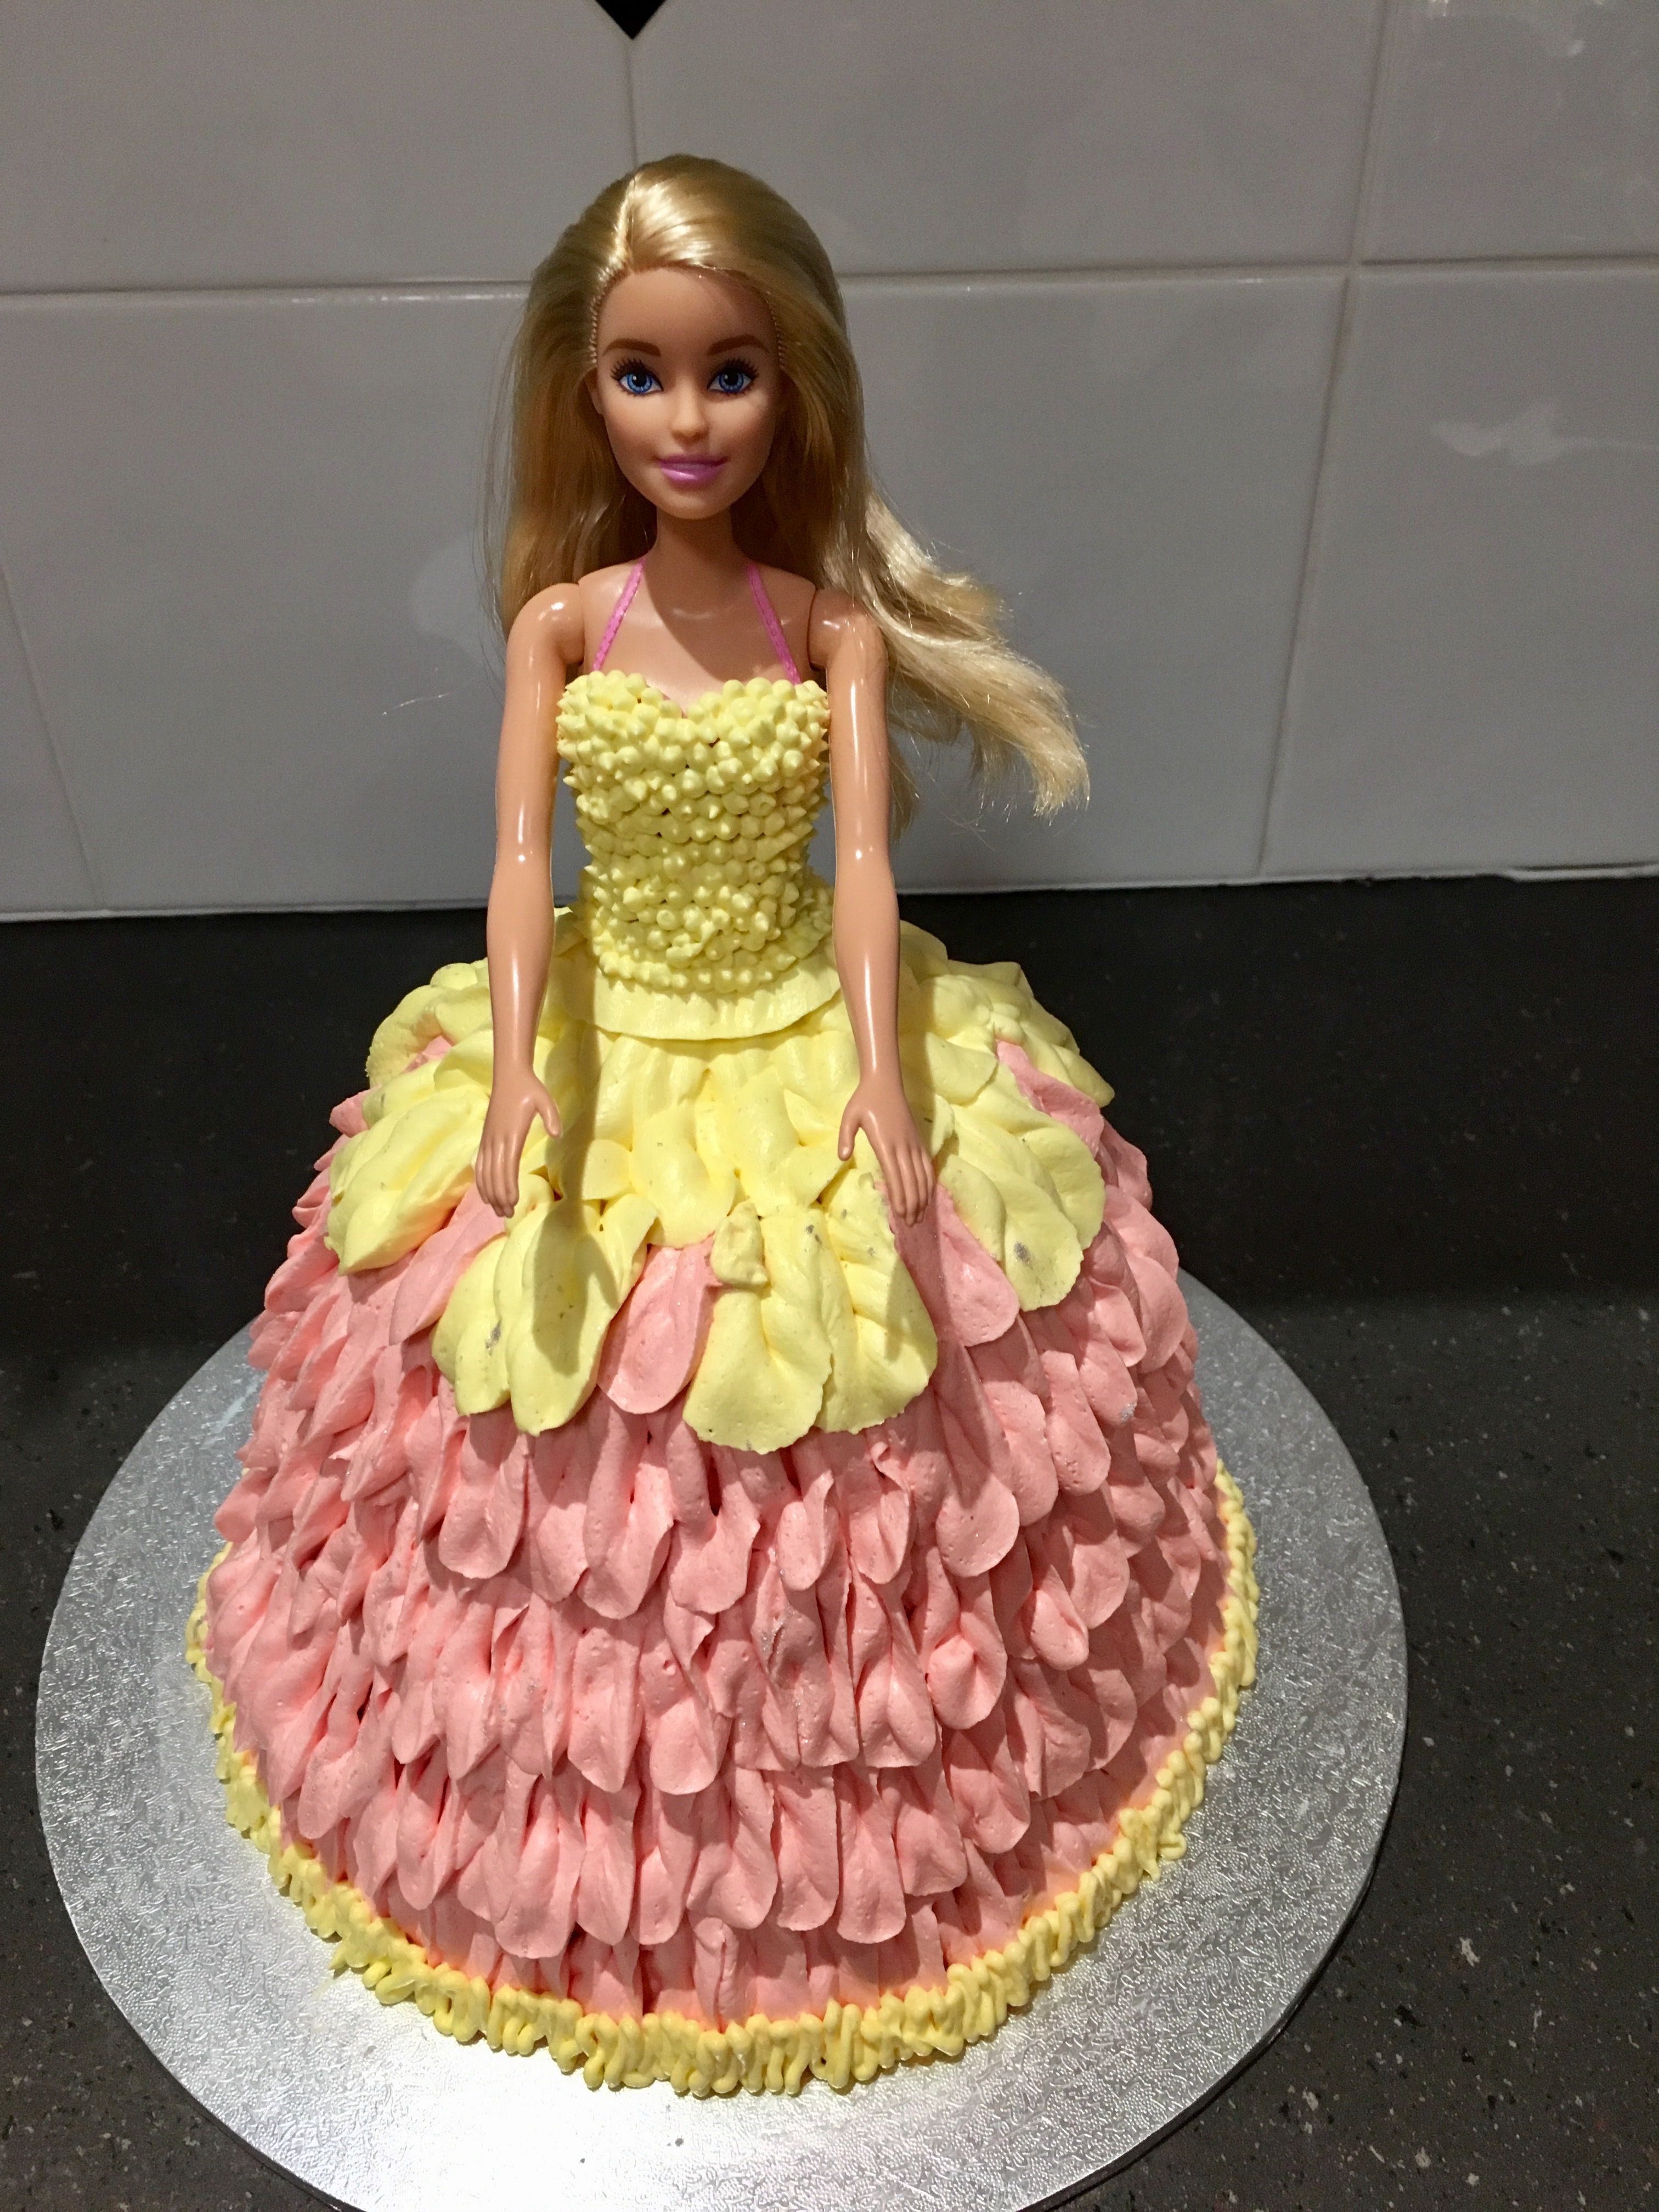 Pretty Barbie Doll Cake With Piped Buttercream Icing With Images